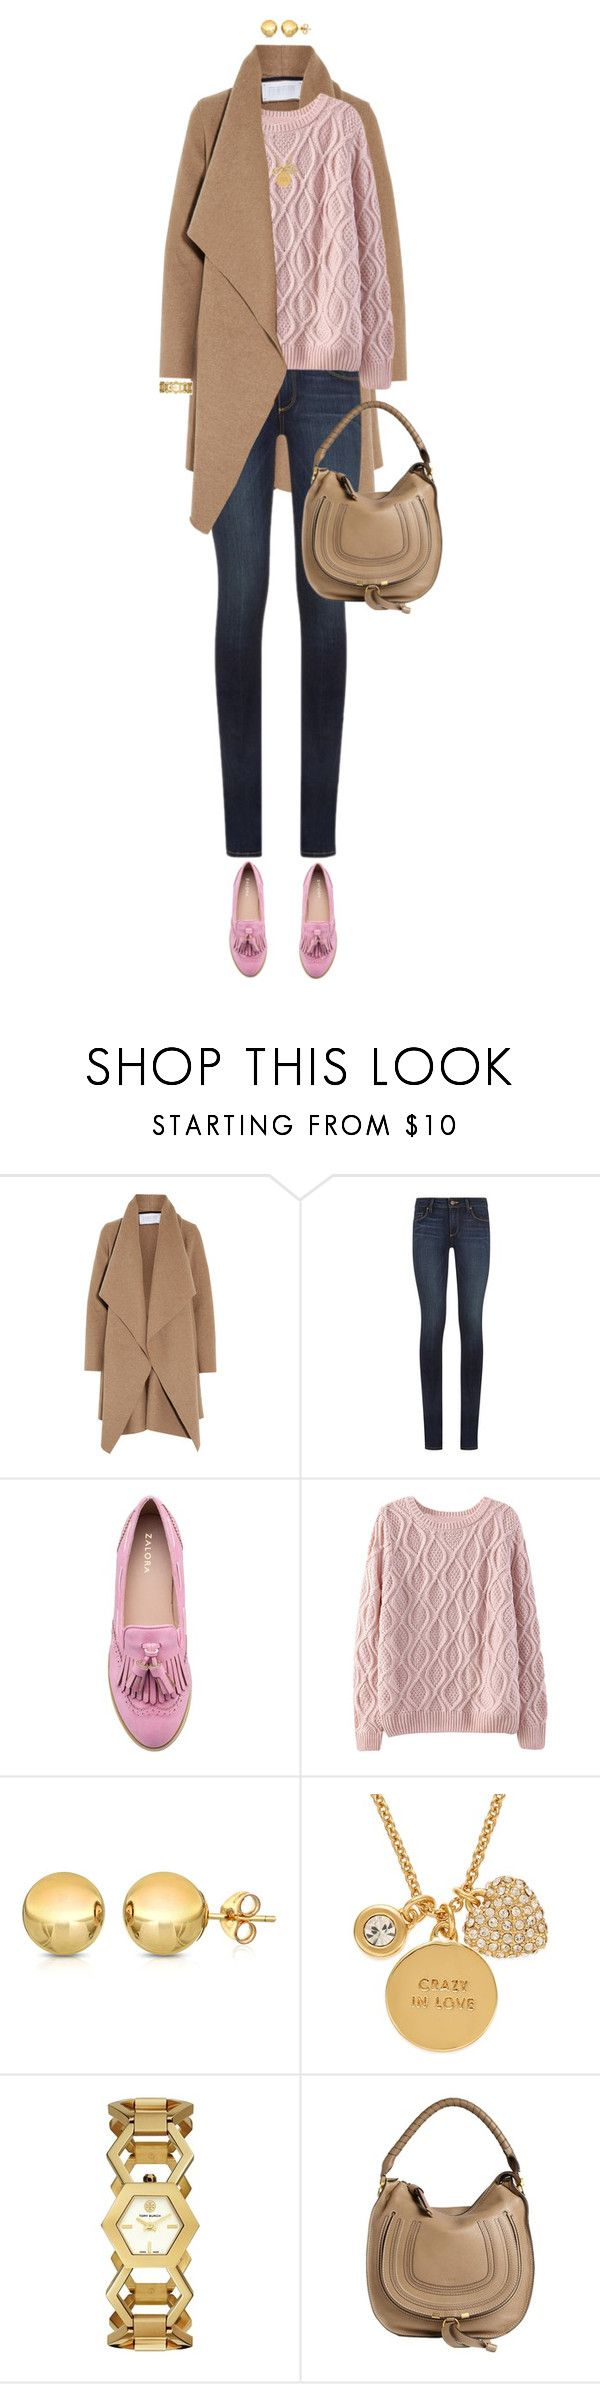 """""""Black Friday Shopping"""" by ittie-kittie on Polyvore featuring Harris Wharf London, Paige Denim, ZALORA, Sevil Designs, Kate Spade, Tory Burch, Burberry, shoppingoutfit and blackfriday"""